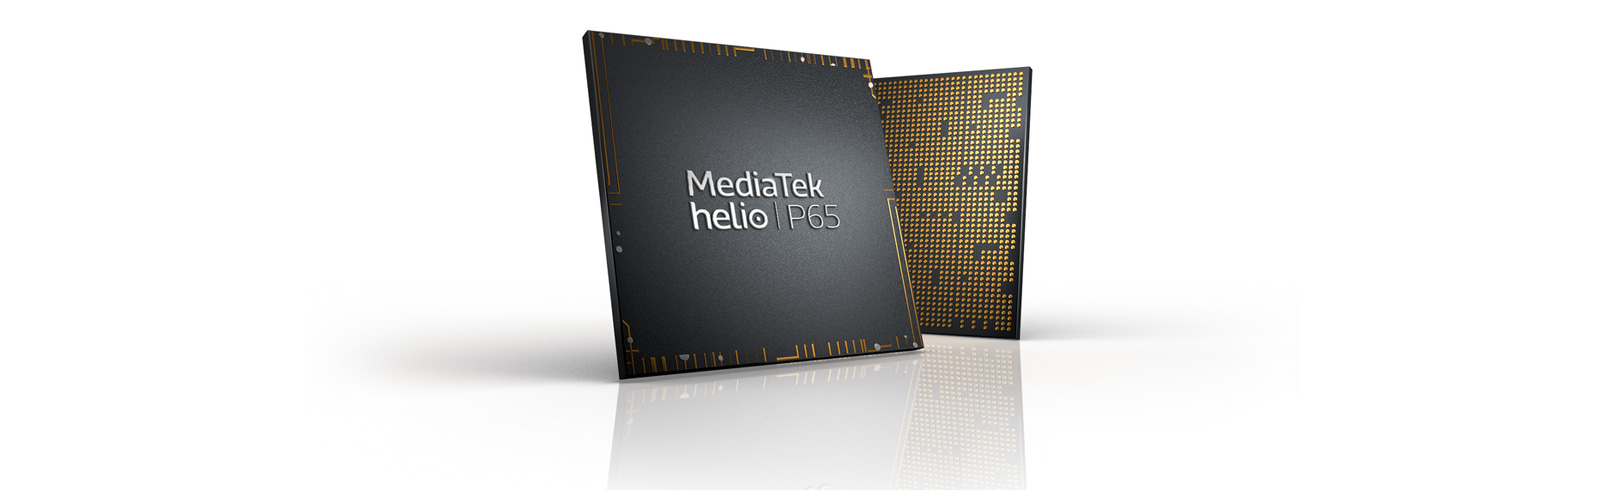 MediaTek Helio P65 is official with a Cortex-A75/A55 CPU and a Mali-G52 GPU